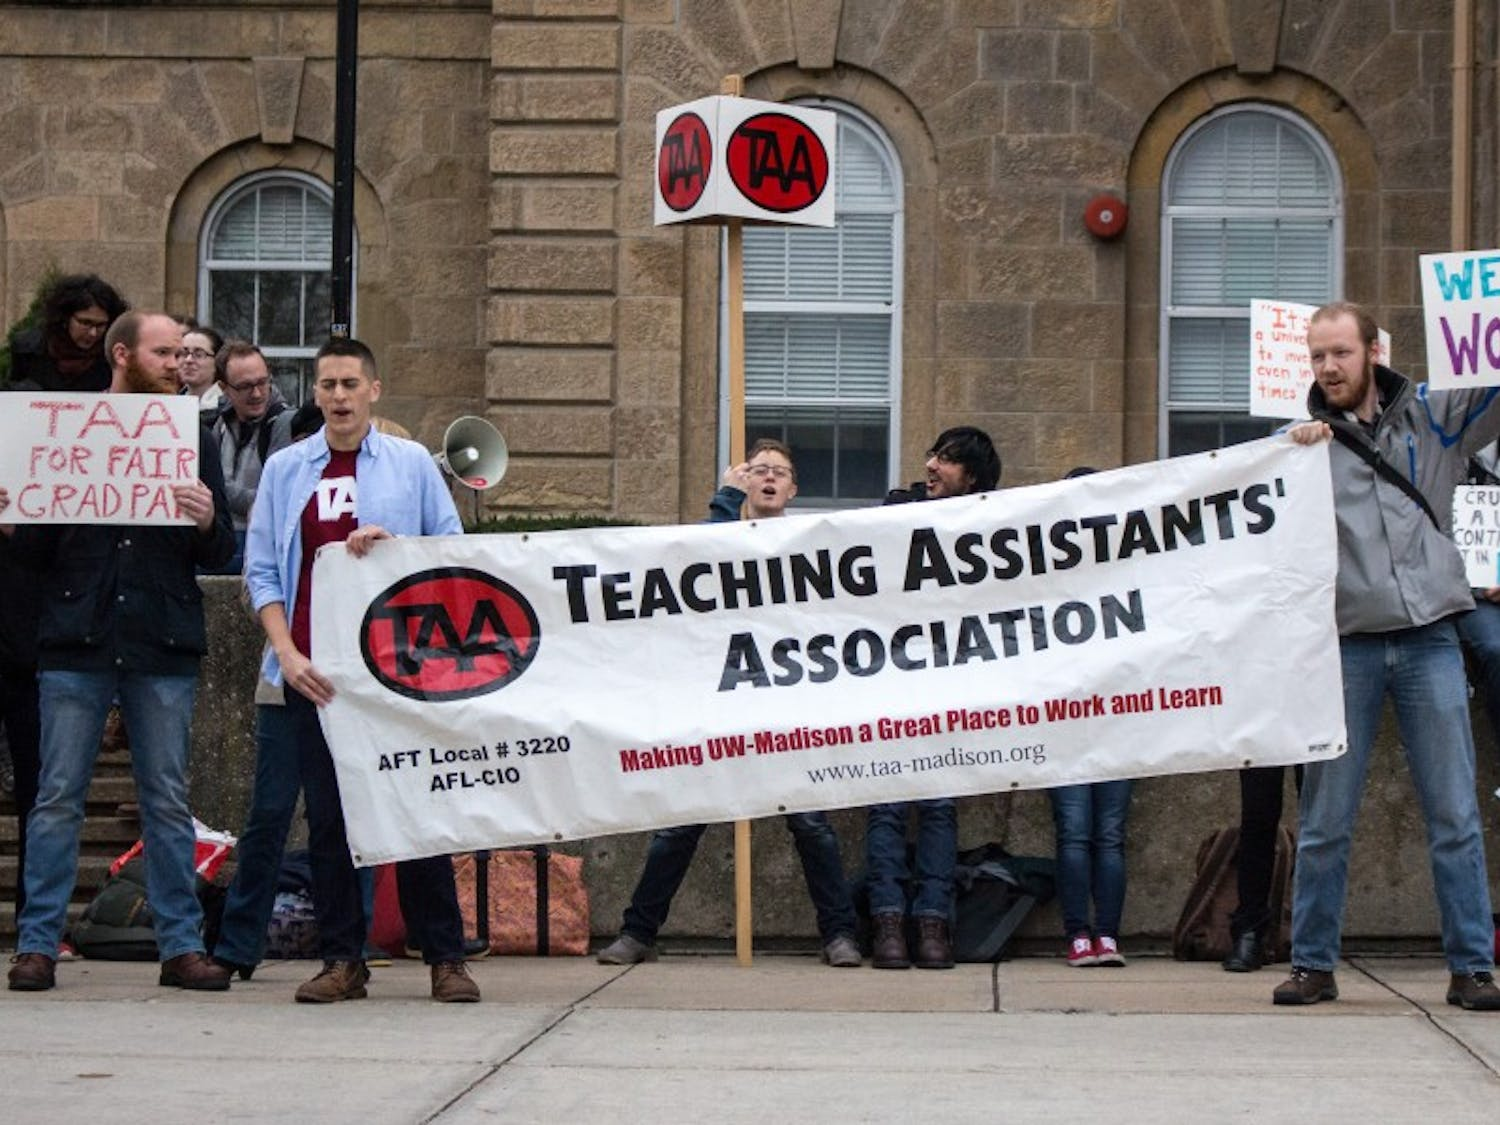 With the help of student government resolution, TAA resists new segregated fees policy